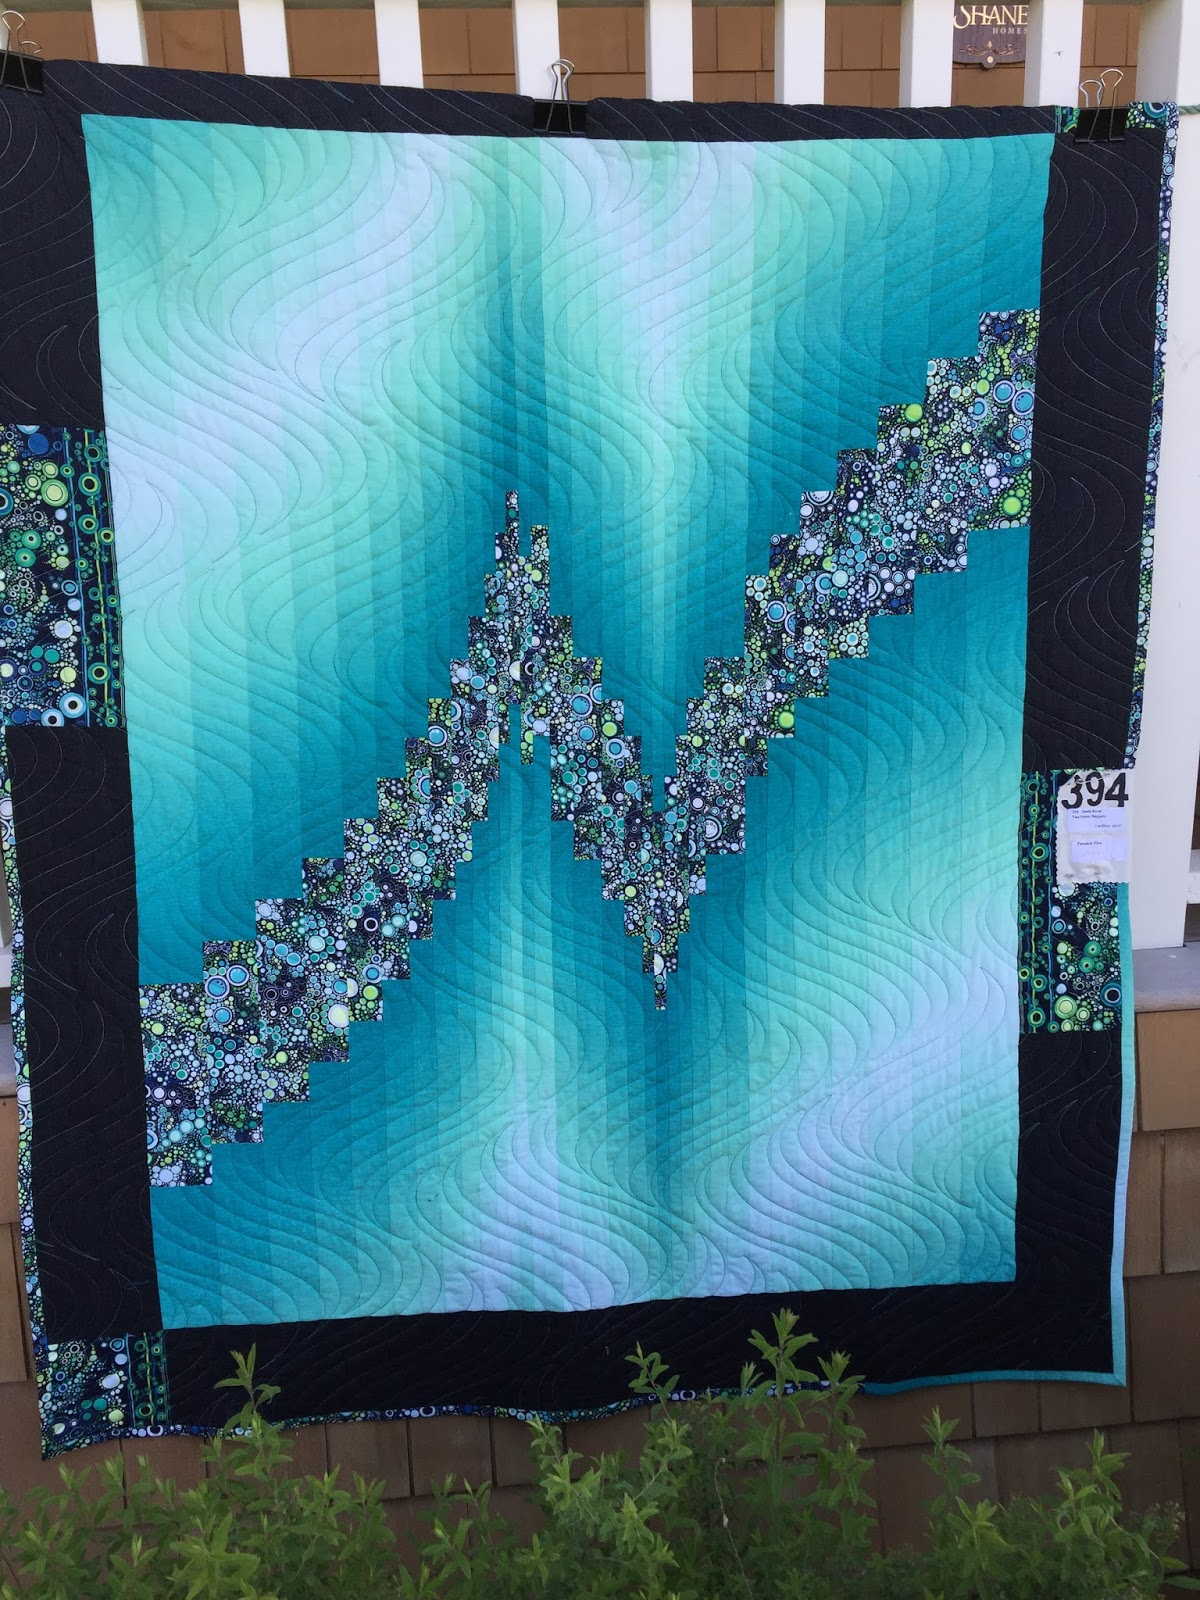 Spotty Dog Social Club: Heritage Park 2016 Festival of Quilts